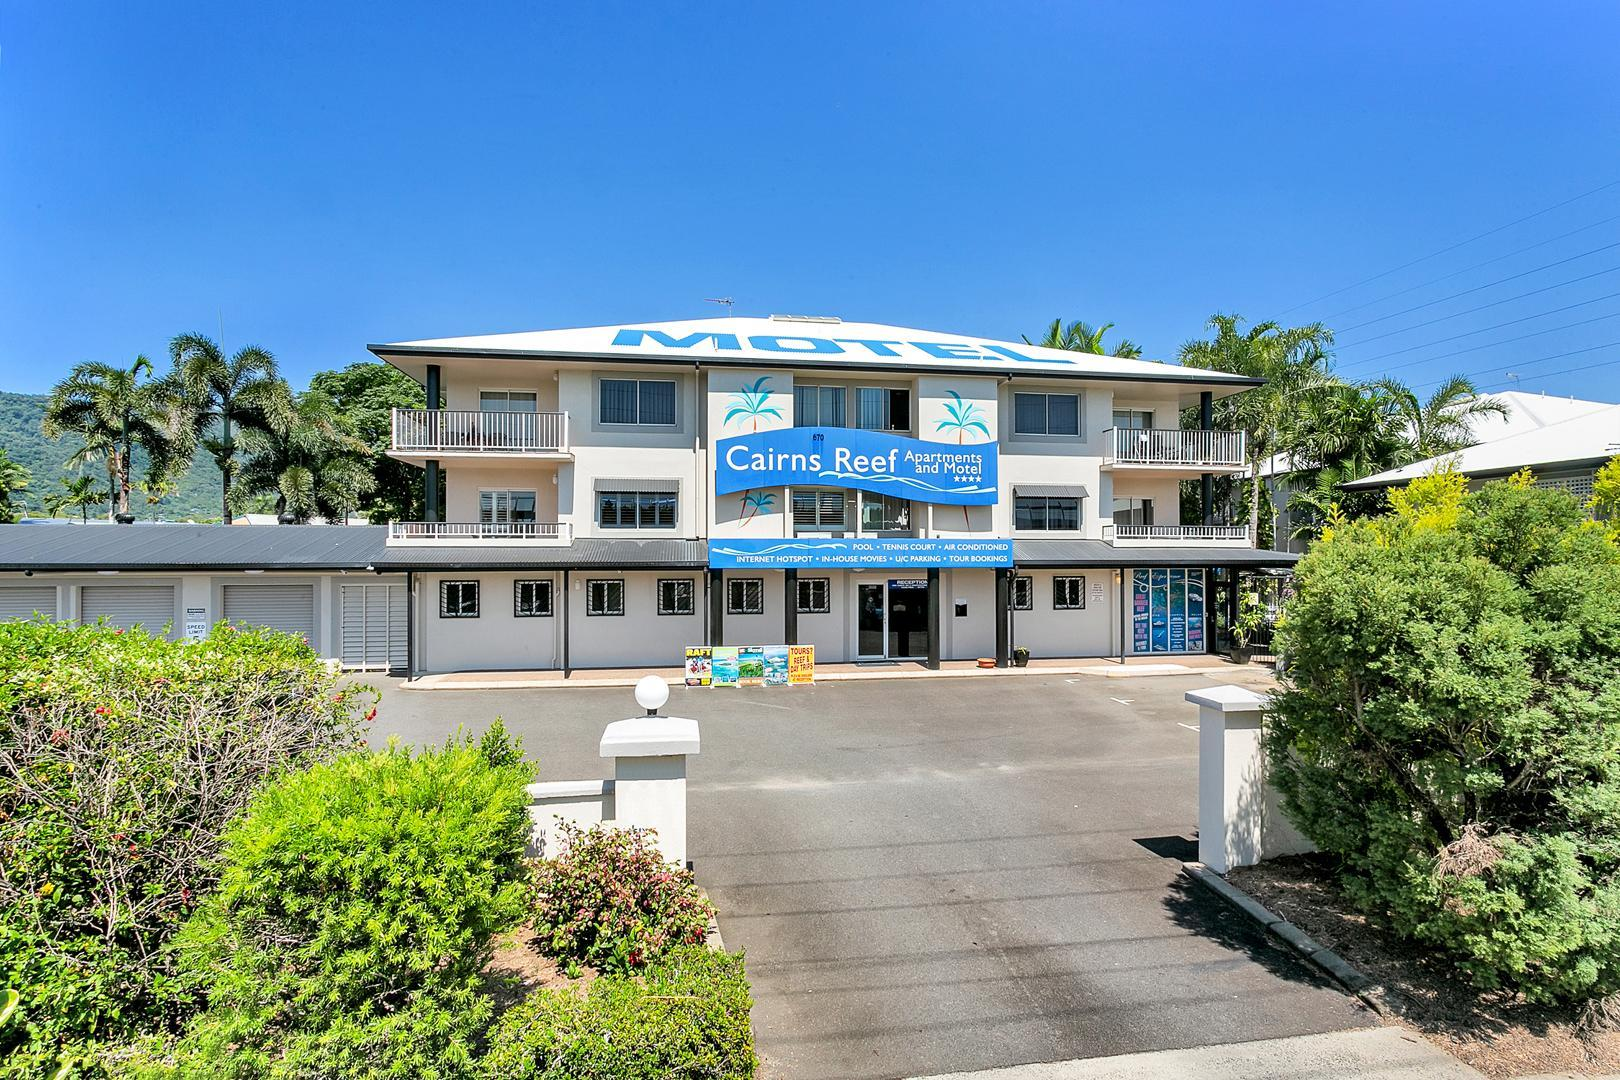 Cairns Reef Apartments & Motel